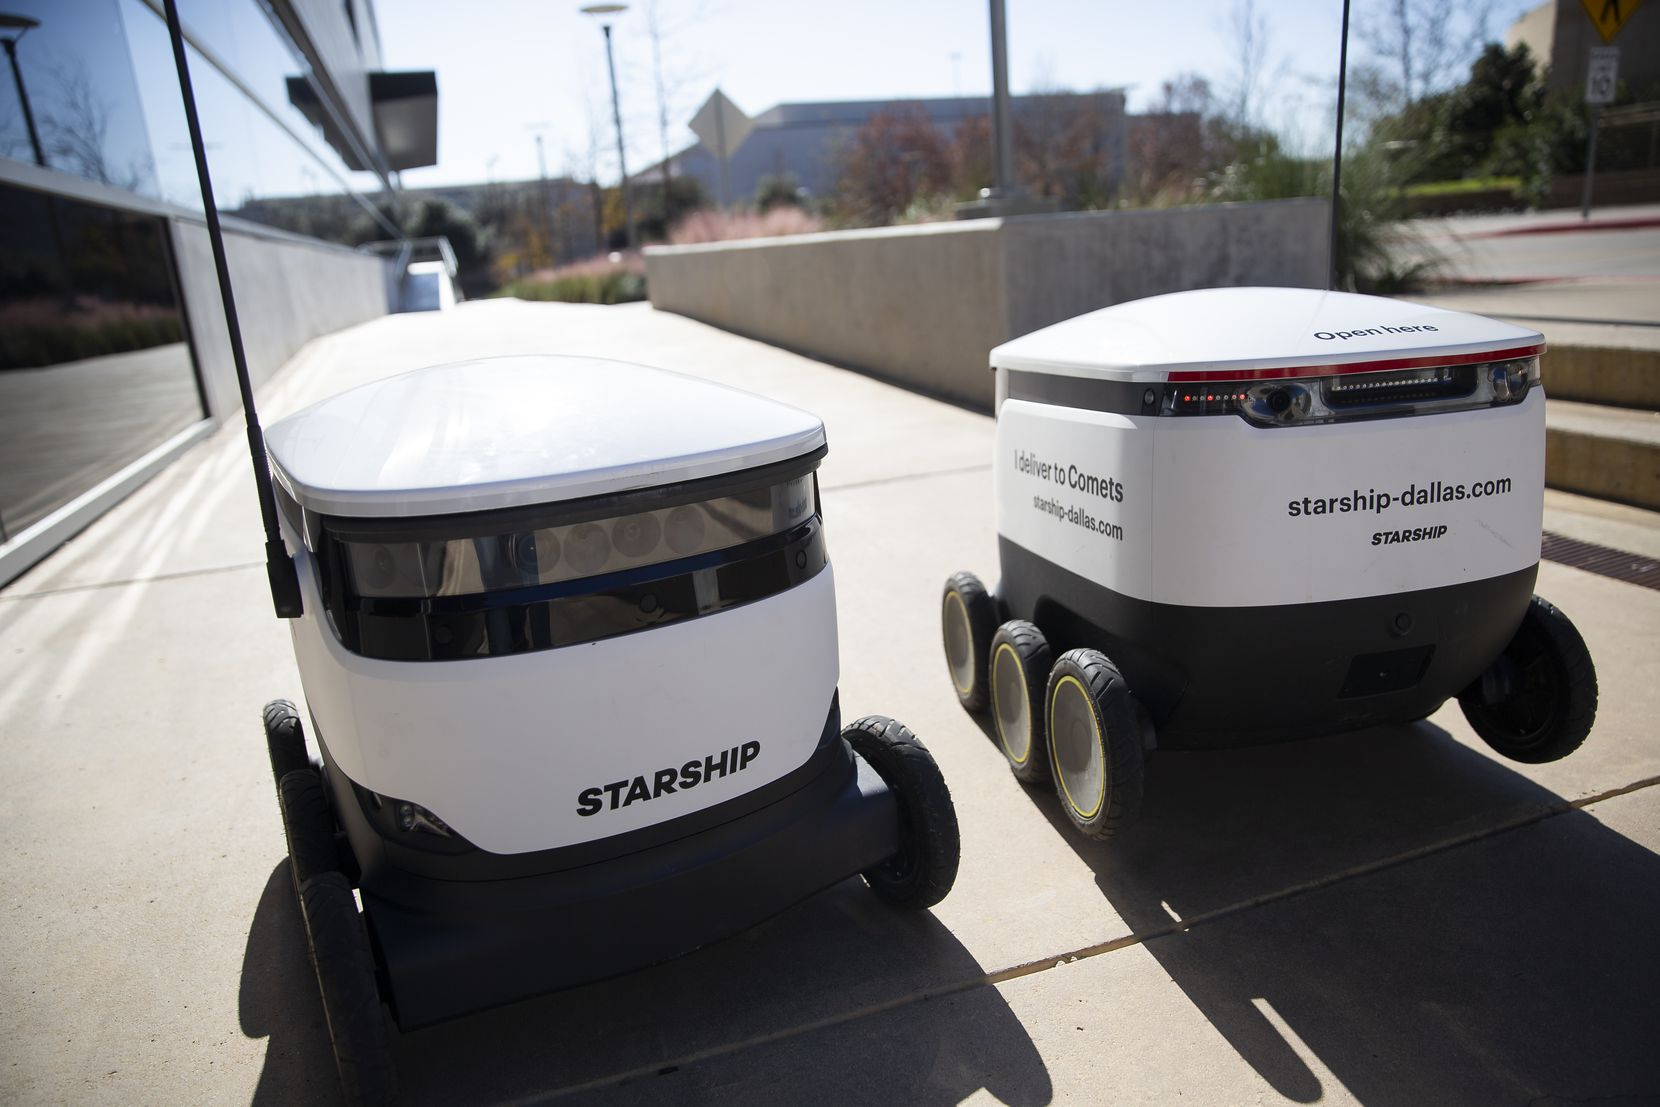 The meal-delivering robots travel up to 4 mph and operate autonomously. Students, staff and faculty order food through a smartphone app. (Juan Figueroa/The Dallas Morning News)